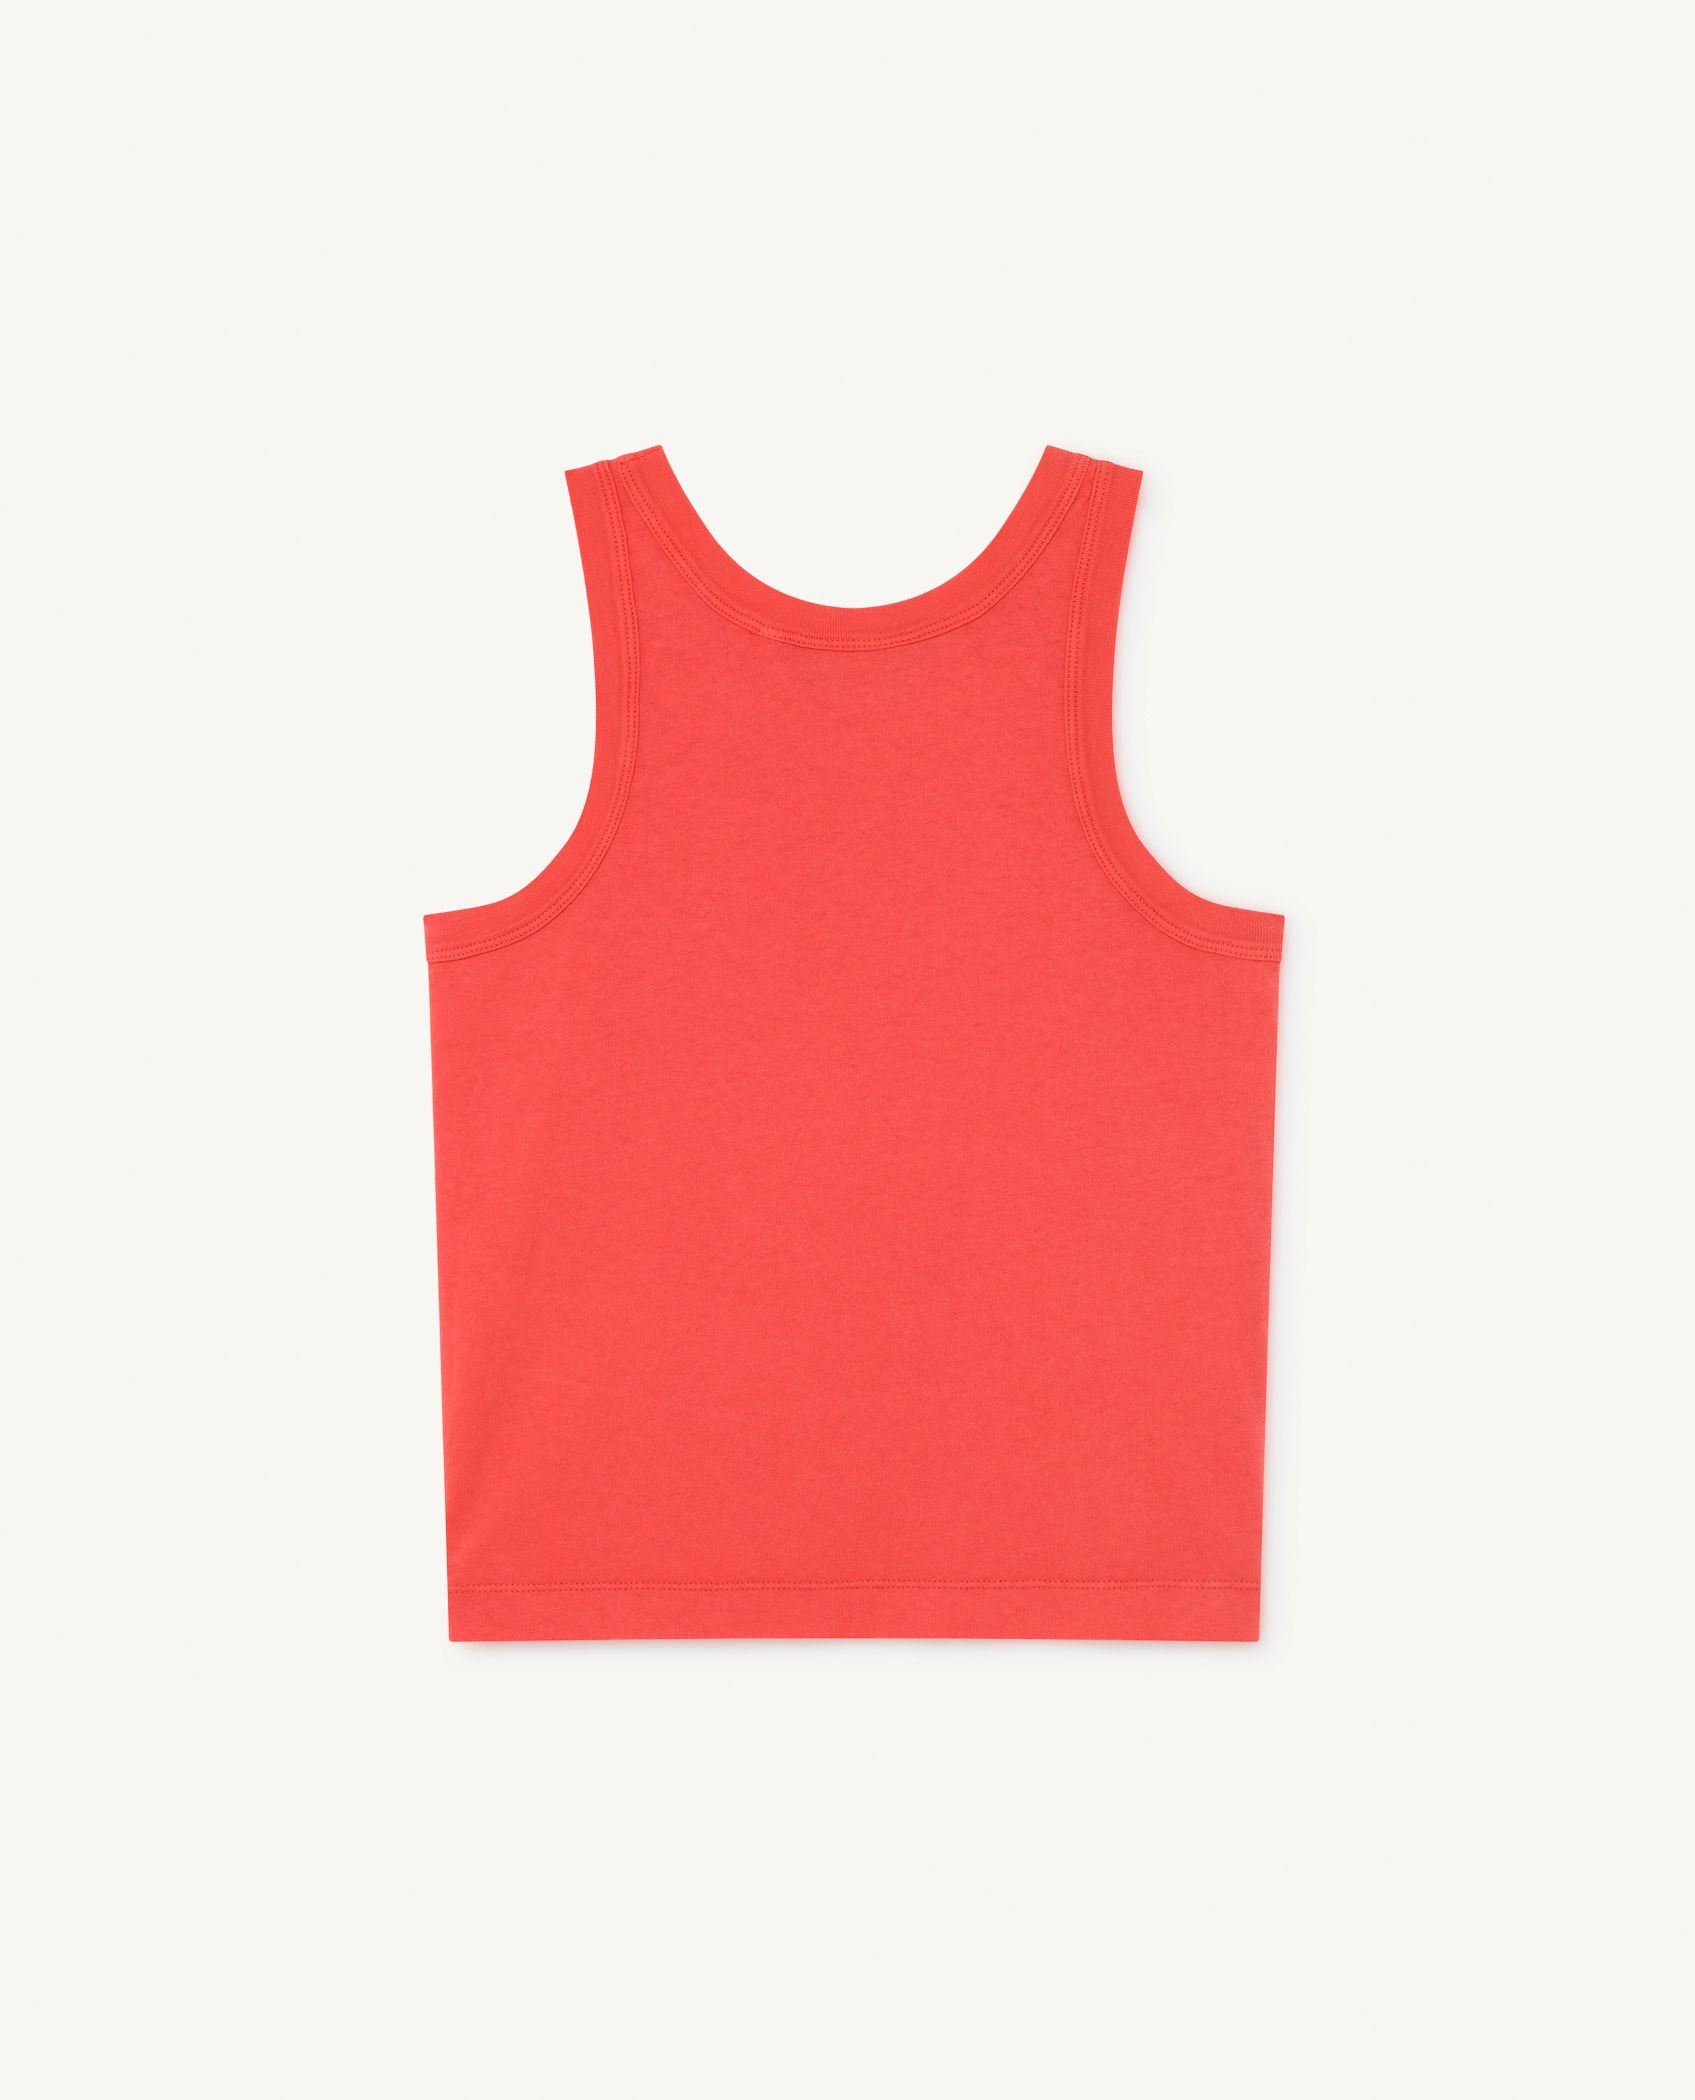 Red Frog Tank Top img-2